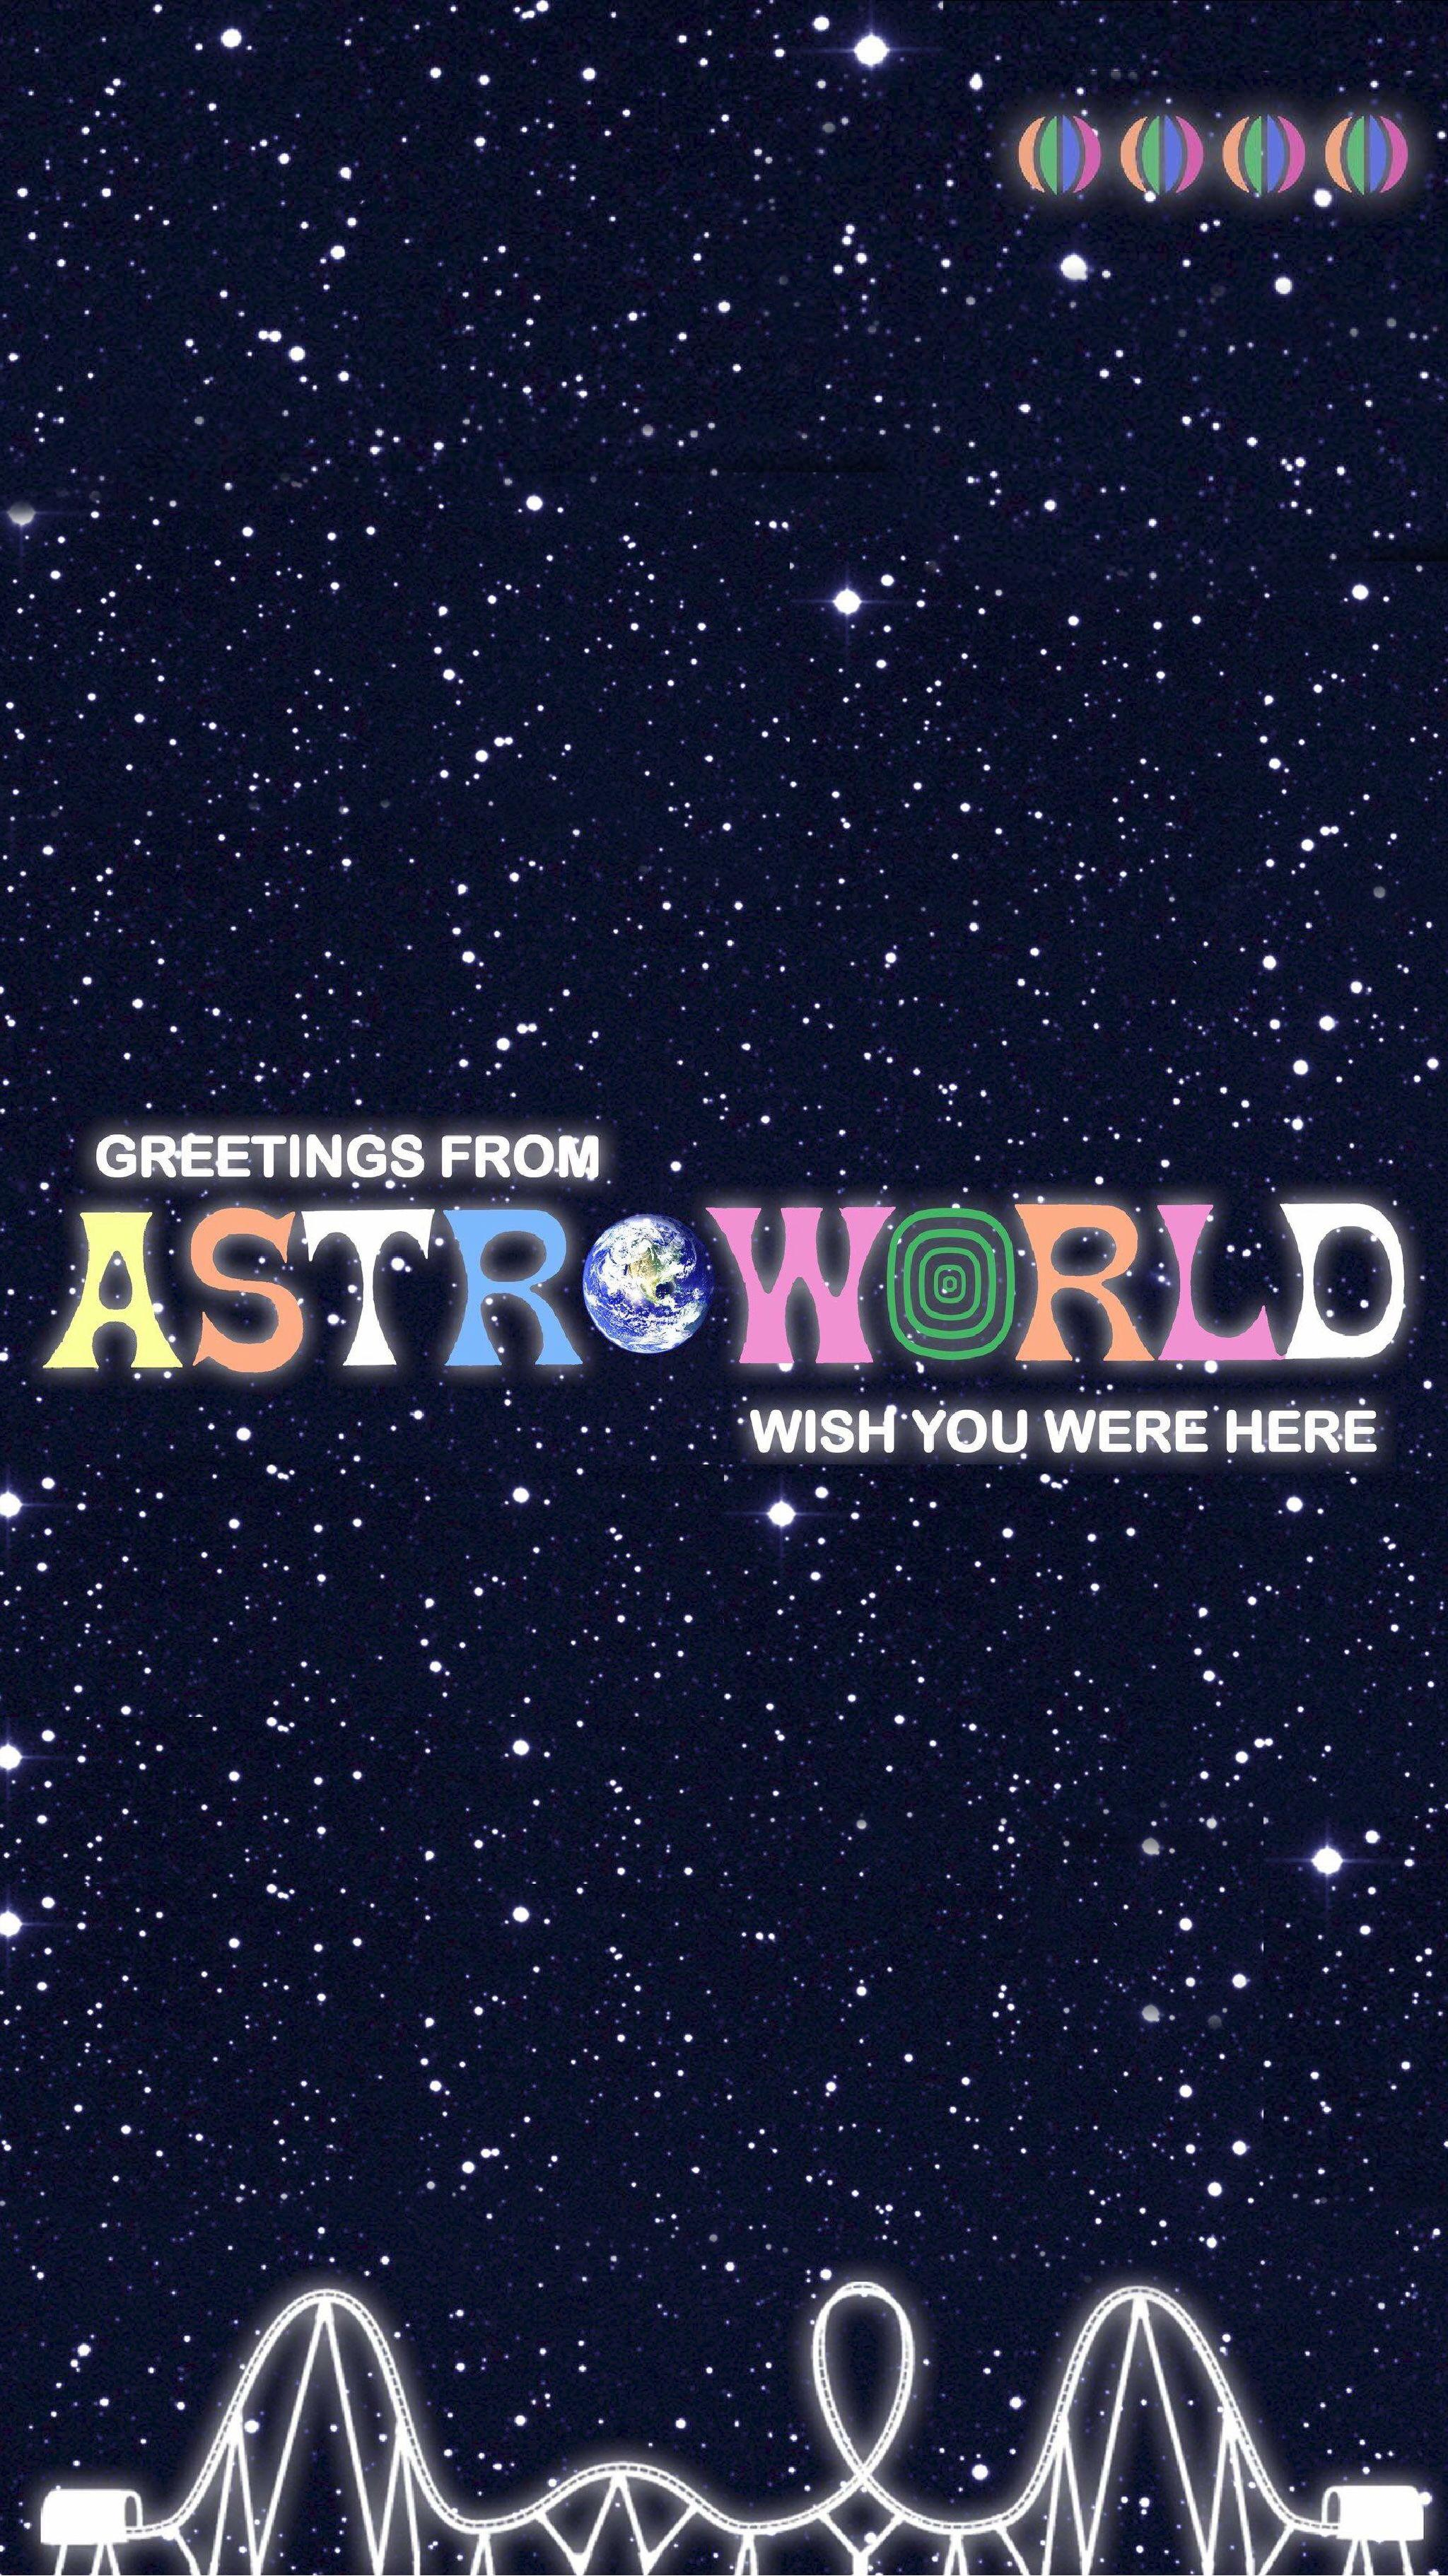 Astro World Iphone Wallpaper Kolpaper Awesome Free Hd Wallpapers